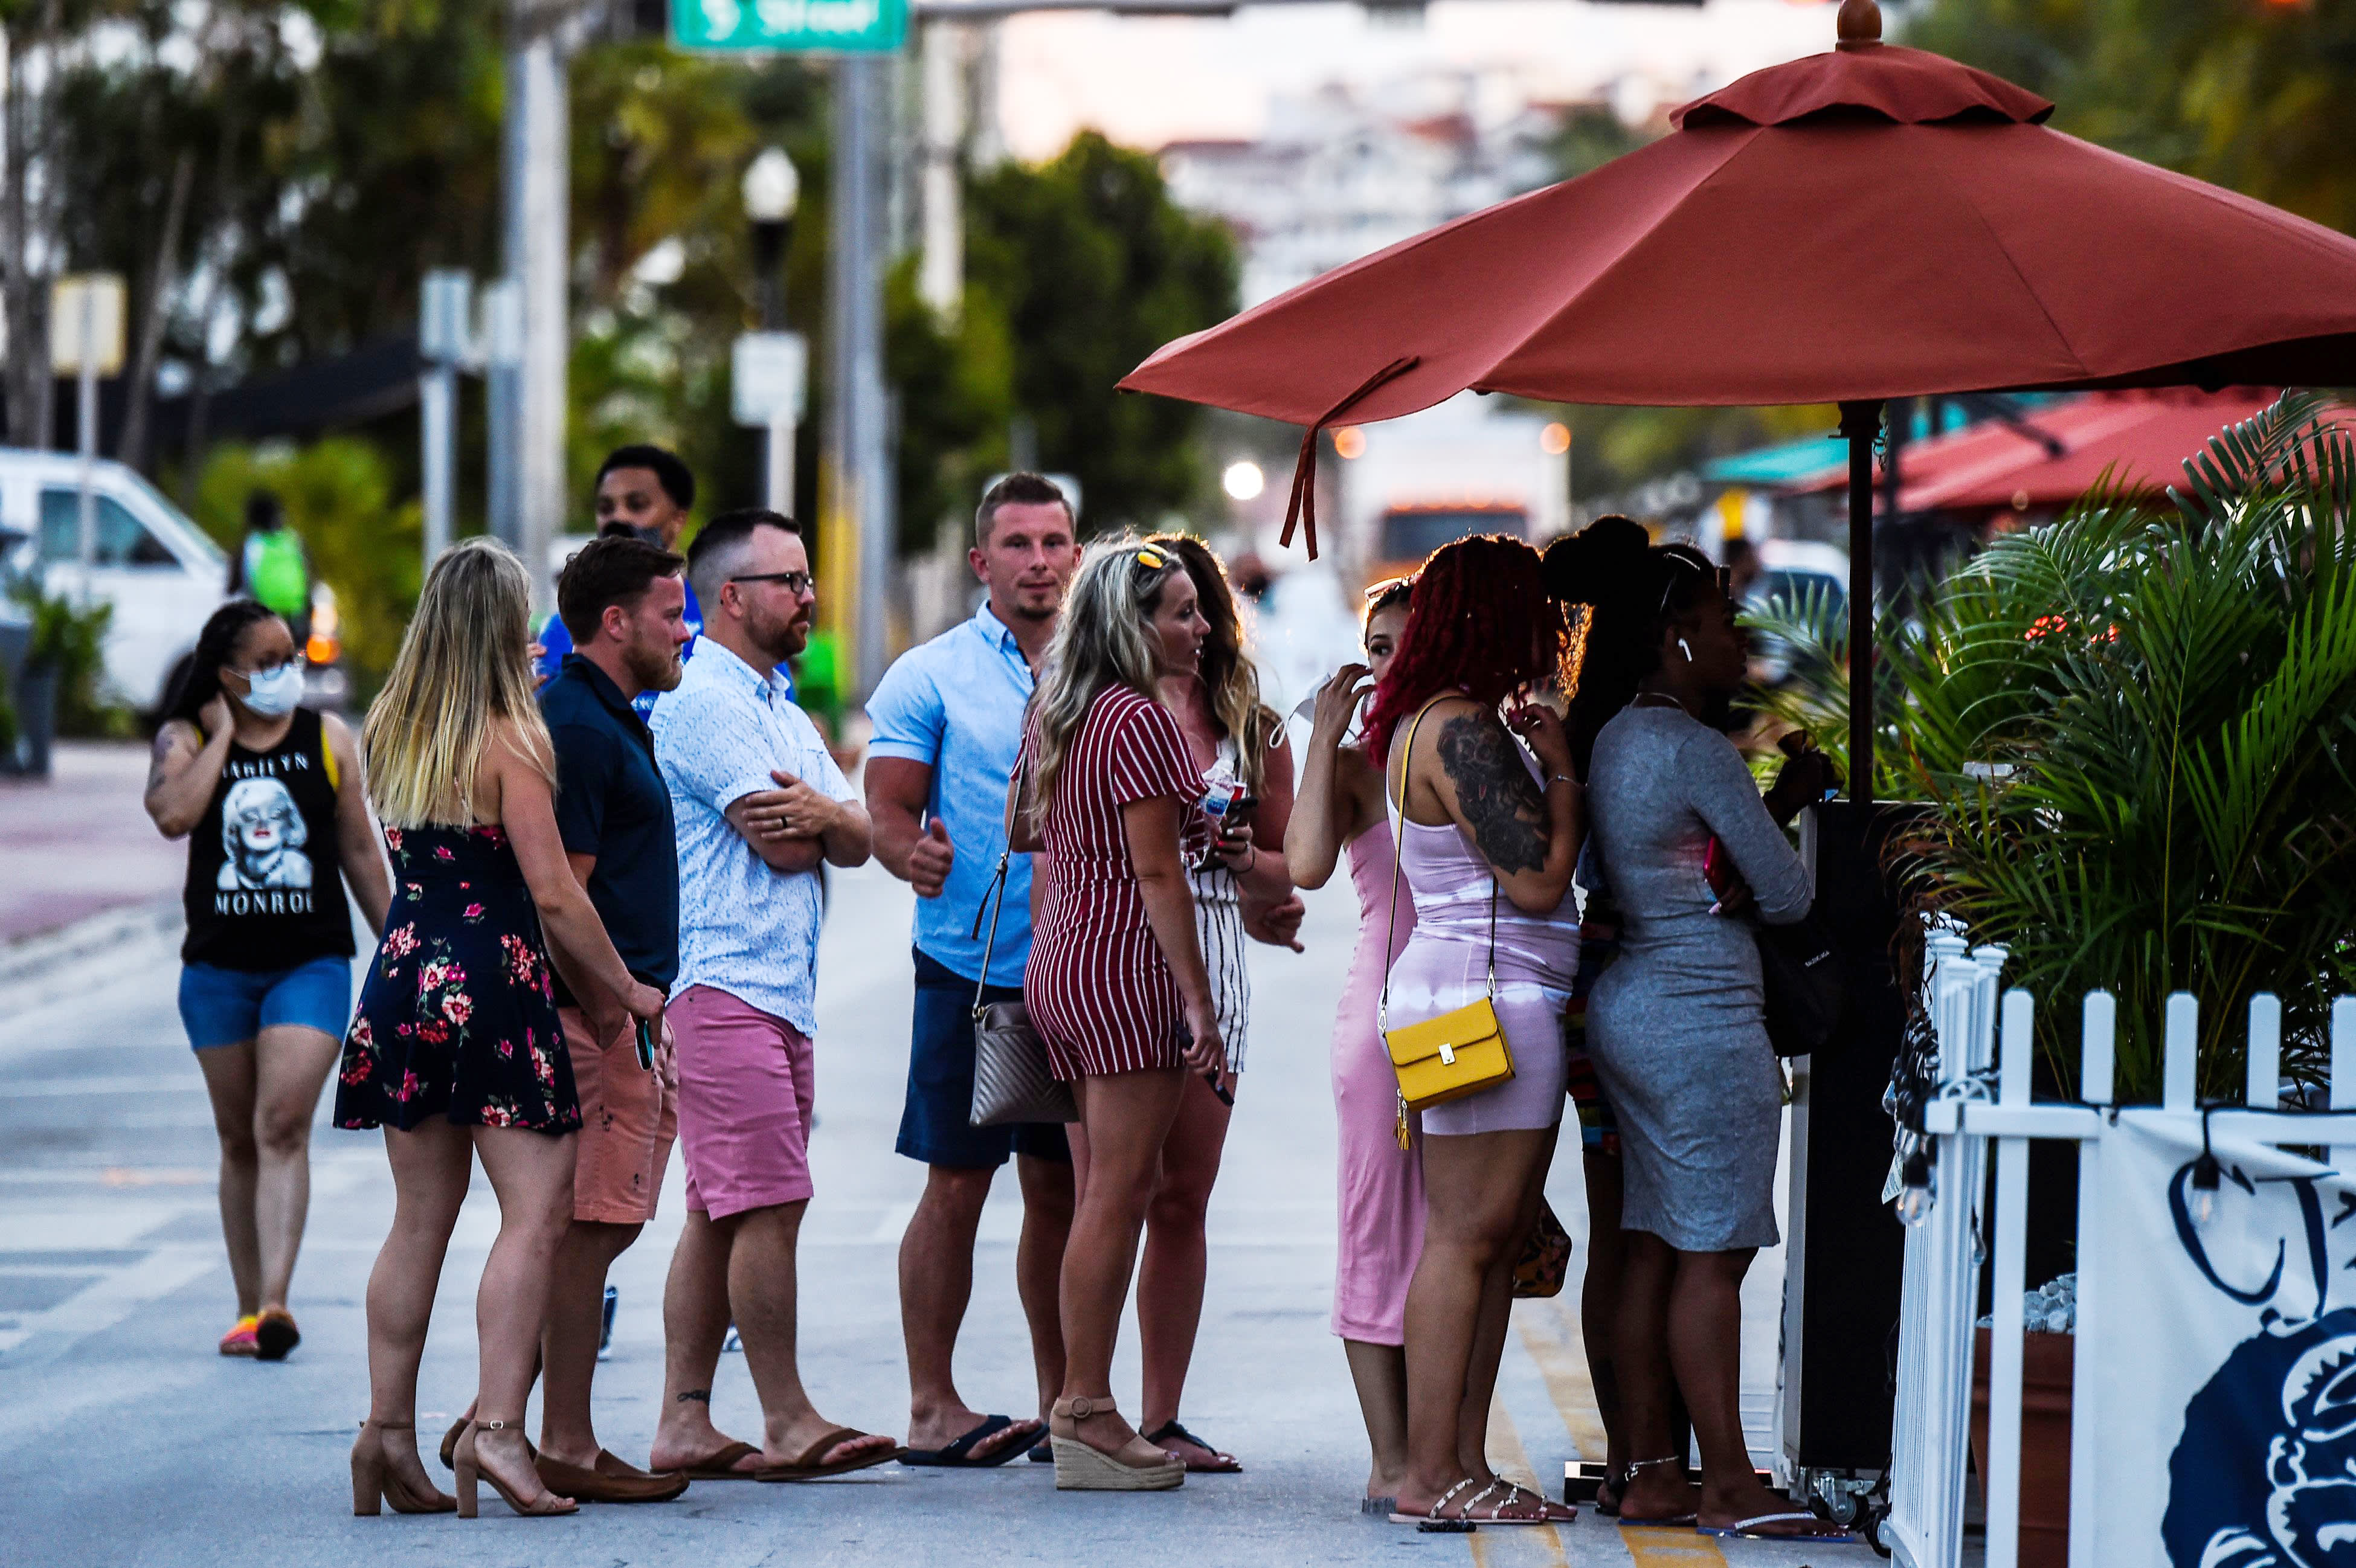 cnbc.com - Emma Newburger - Florida reports more than 11,000 new coronavirus cases, breaking another daily record as Miami imposes curfew